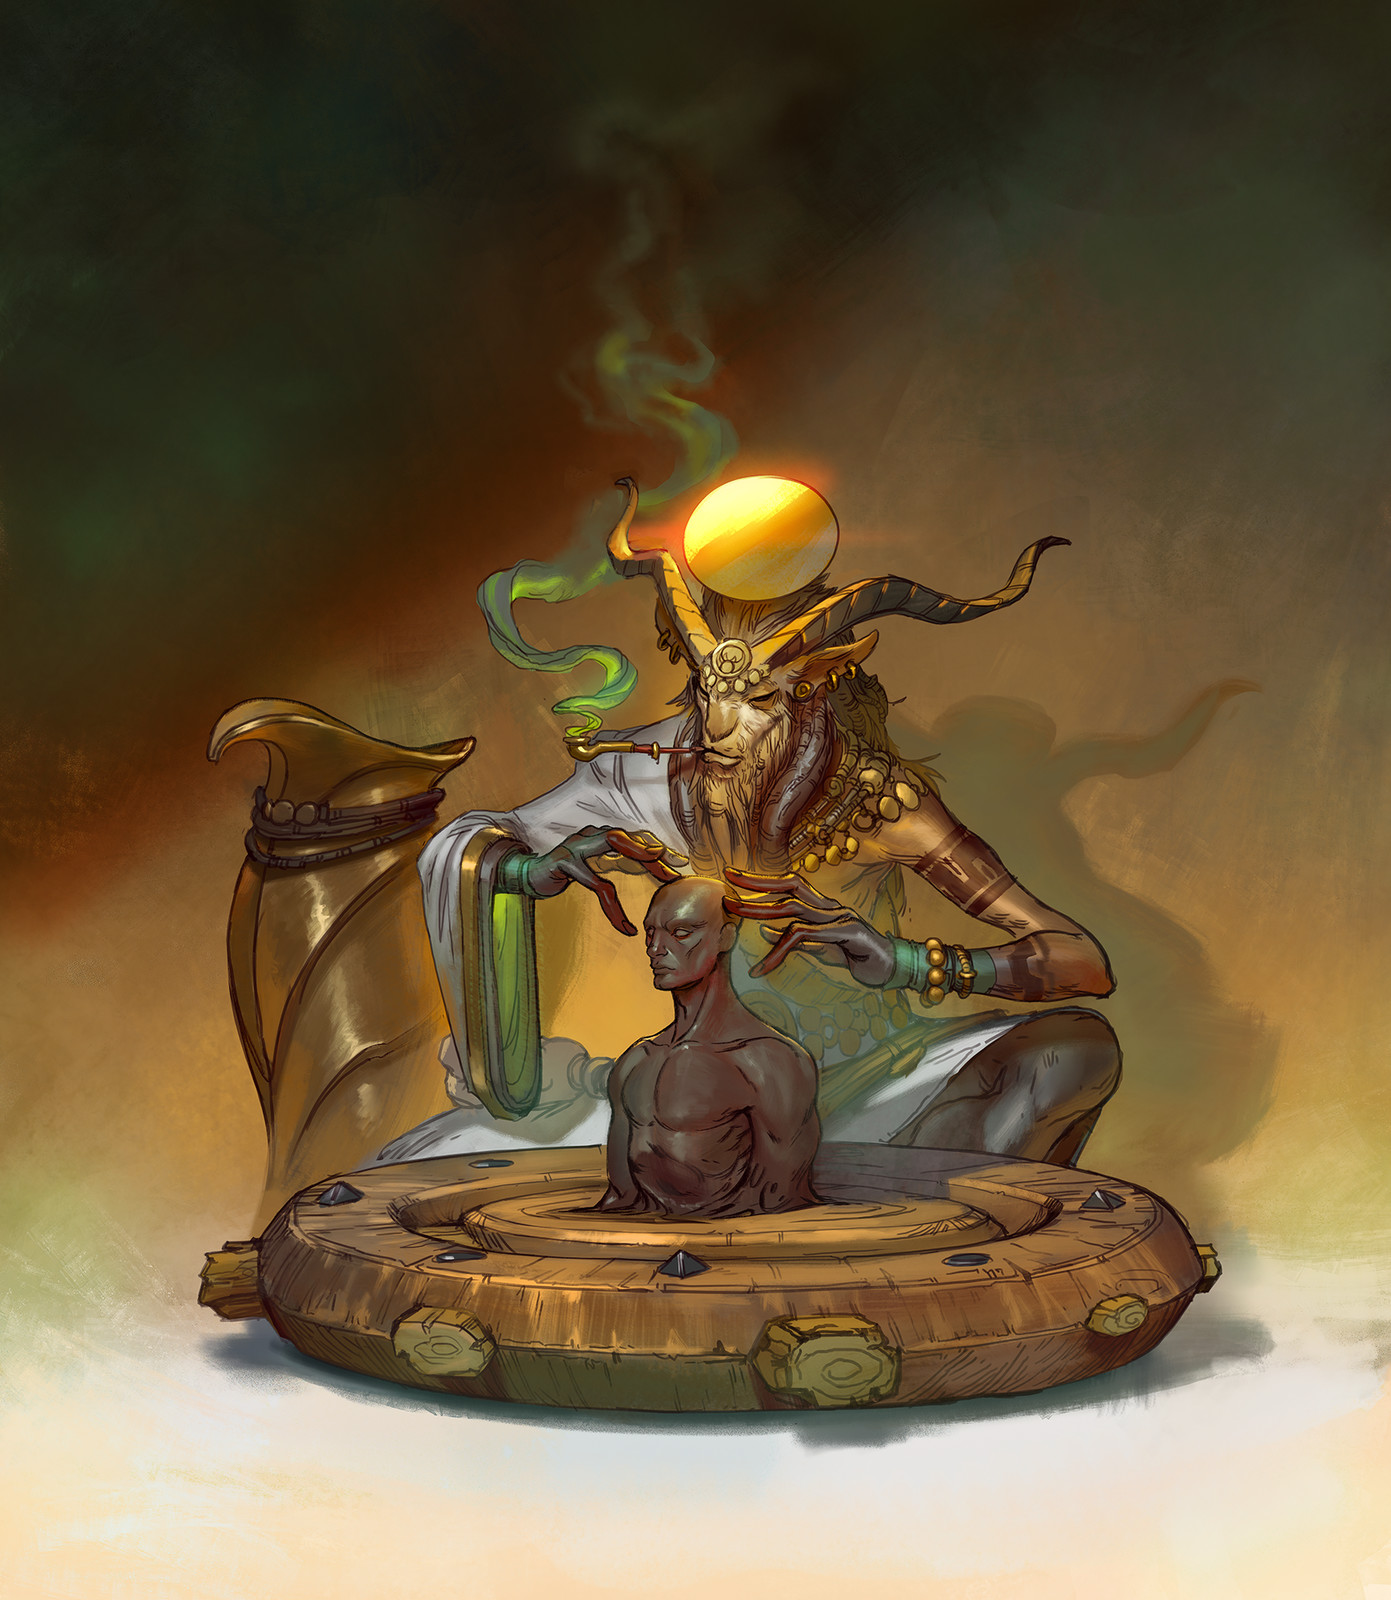 Khnum, the Divine Potter